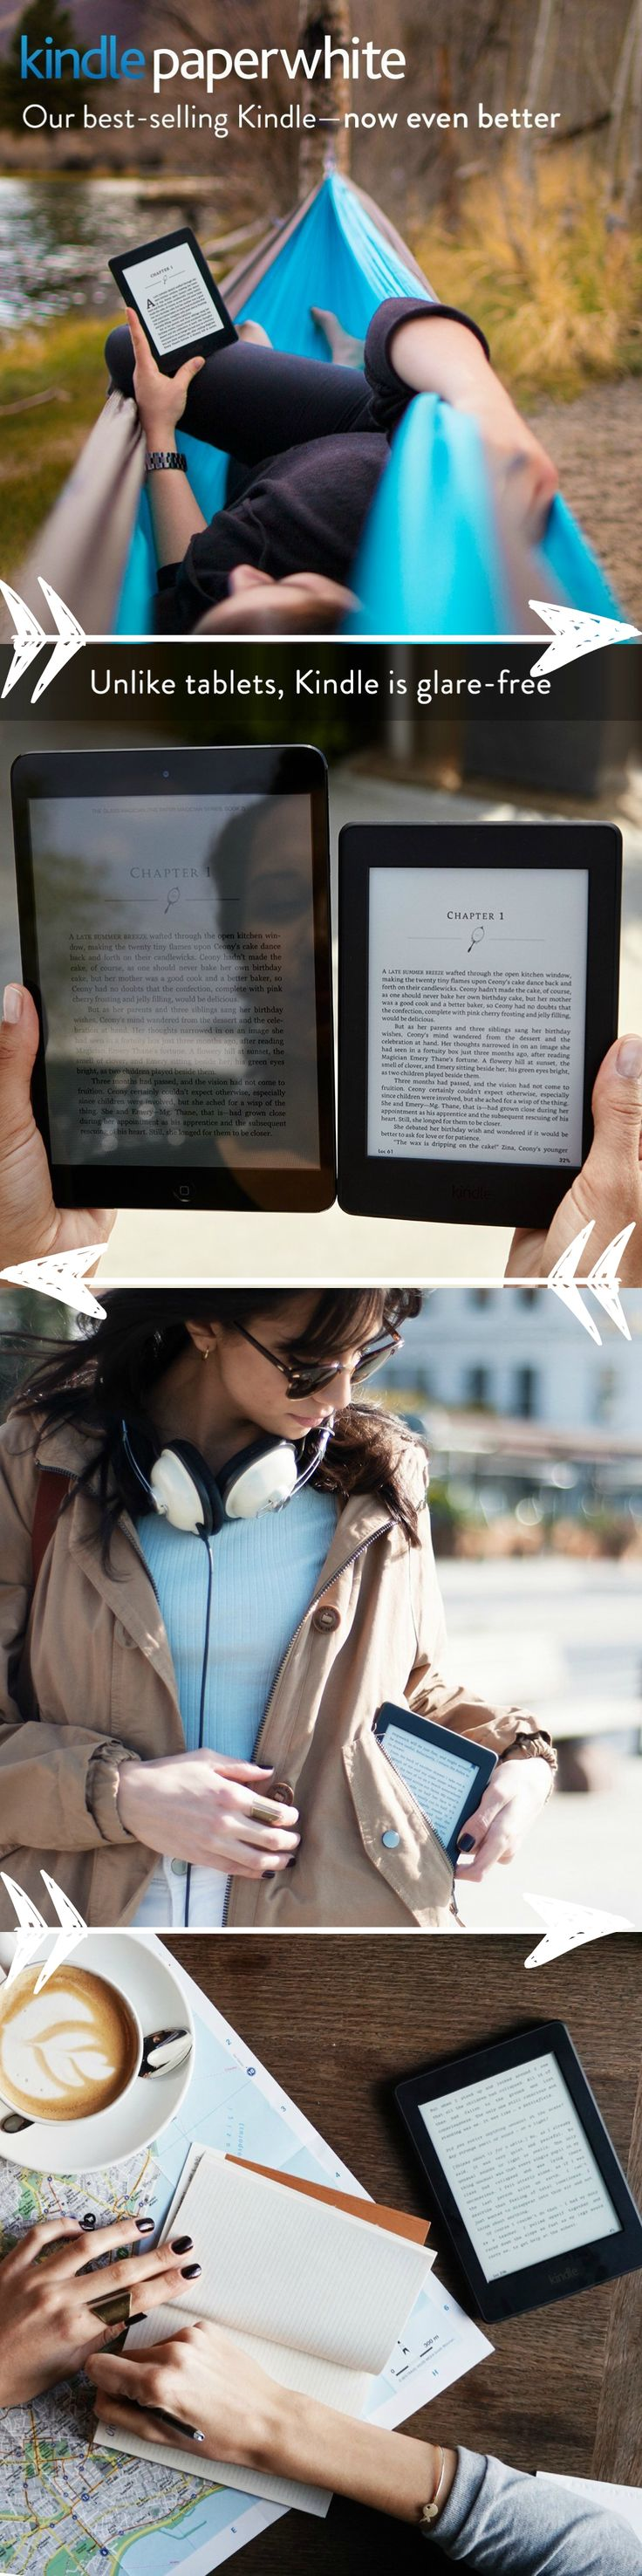 7 Best Amazon Kindle Images On Pinterest Amazoncom Amazonbasics 3button Usb Wired Mouse Black Electronics Lighter Than A Paperback Comfortably Hold Paperwhite In One Hand For Those Times When